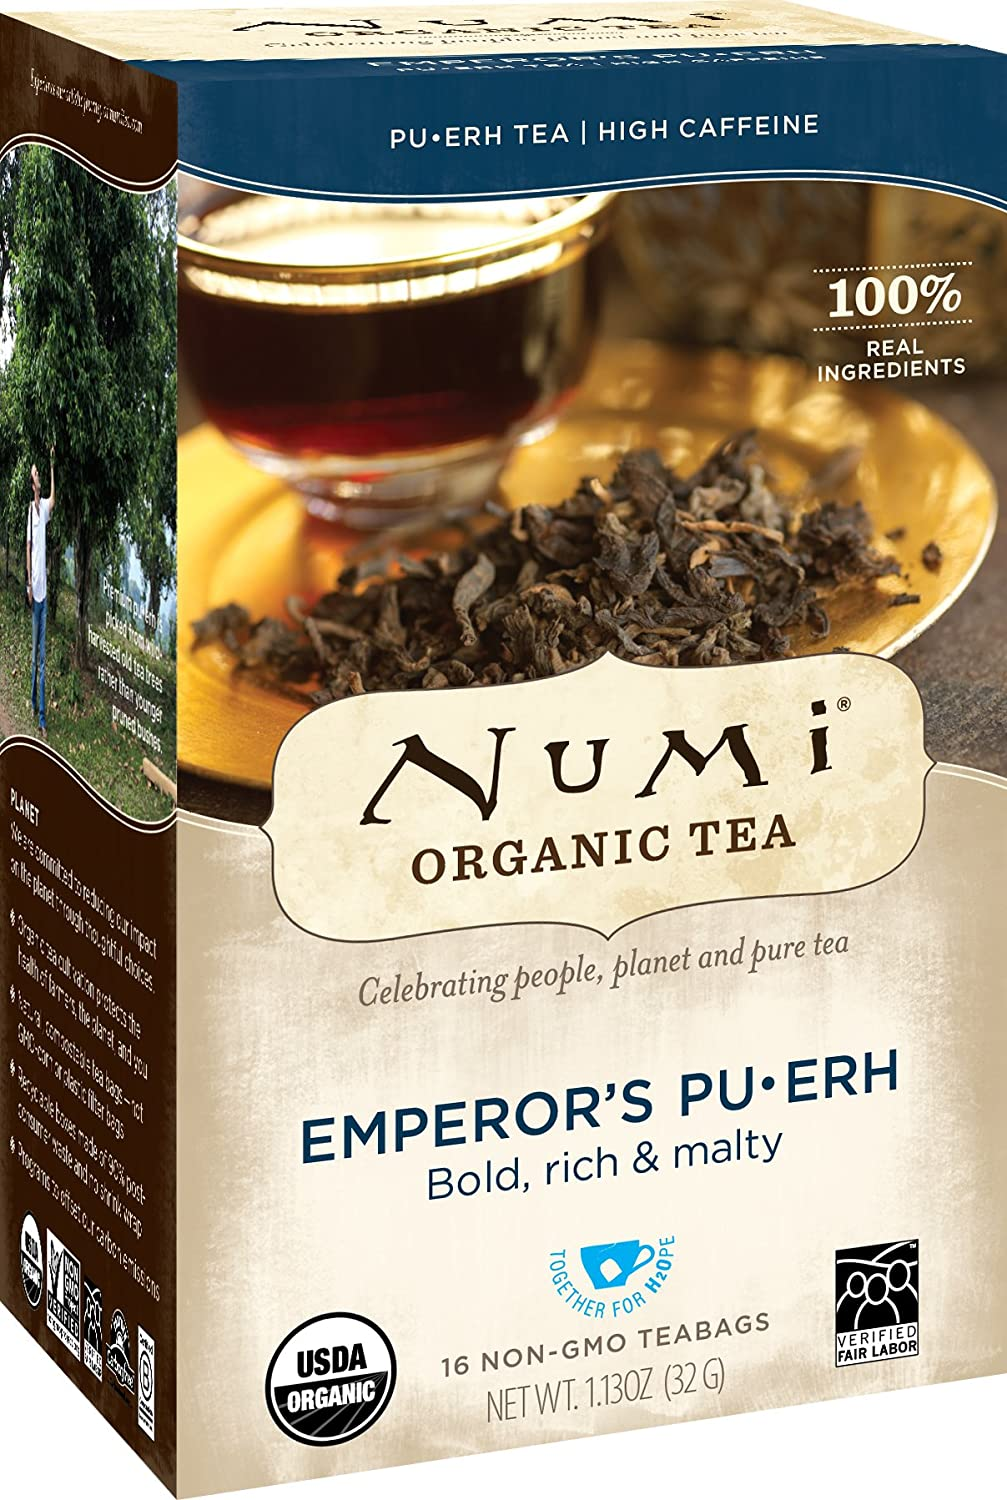 Numi Organic Tea Emperor's Pu-erh, 16 Bags, Organic Pu-erh Fermented Black Tea in Non-GMO Biodegradable Tea Bags, Aged Black Pu-erh Tea, Premium Individually Bagged Tea 680692603507